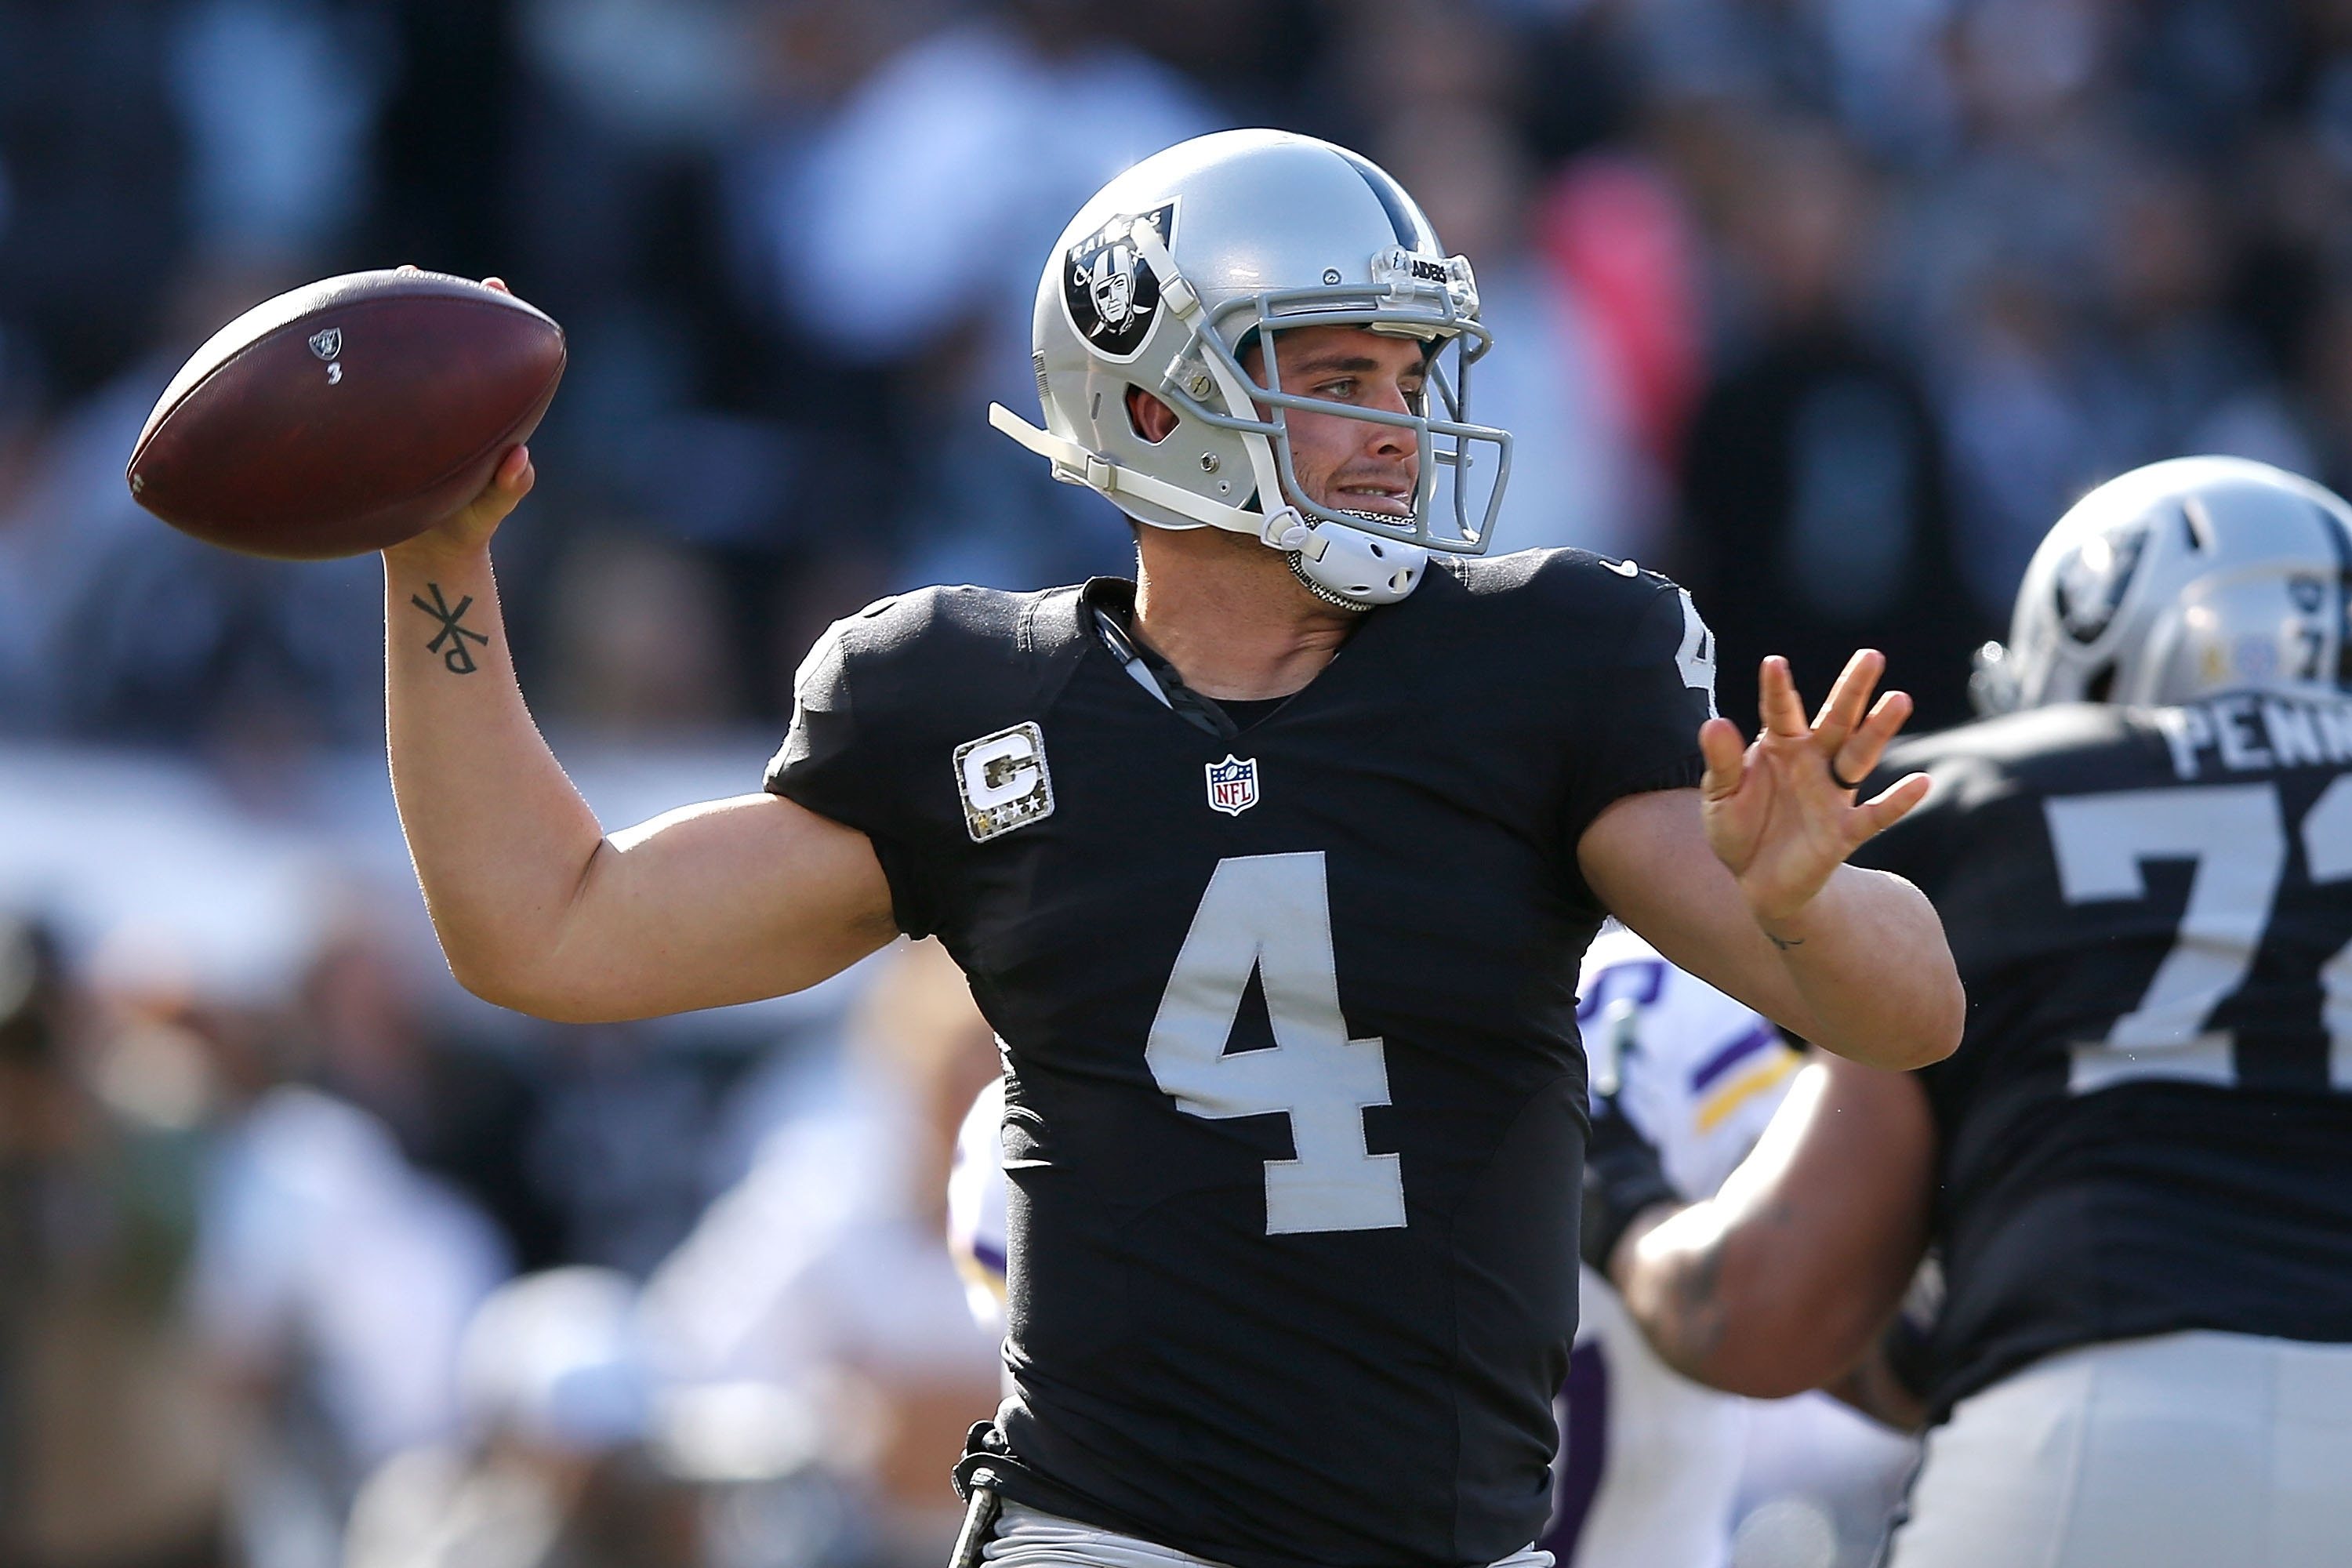 Quarterback Derek Carr of the Oakland Raiders looks downfield  against the Minnesota Vikings in the first quarter at O.co Coliseum on Nov. 15, 2015.